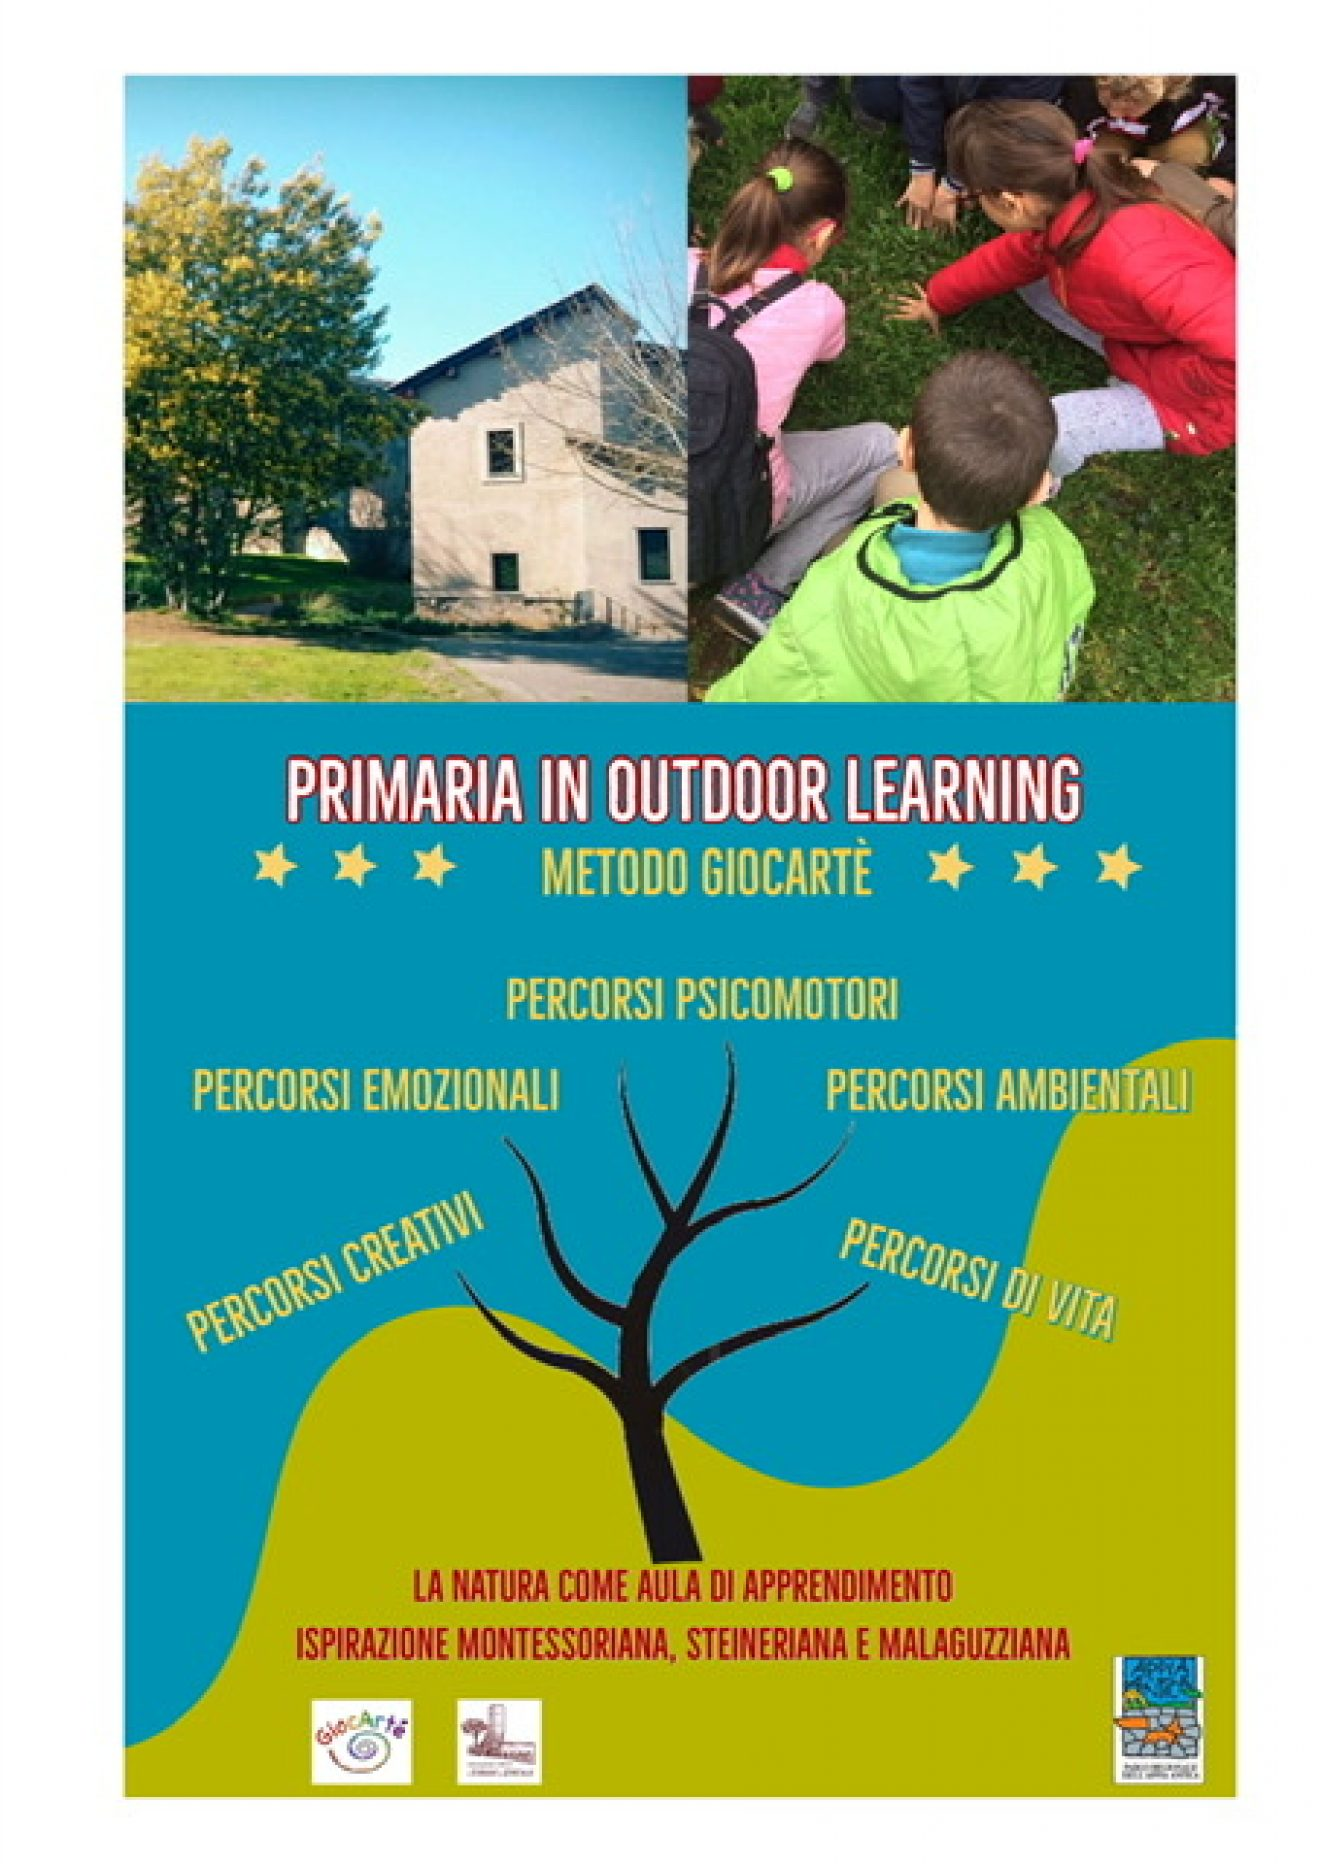 Primaria Outdoor Learning